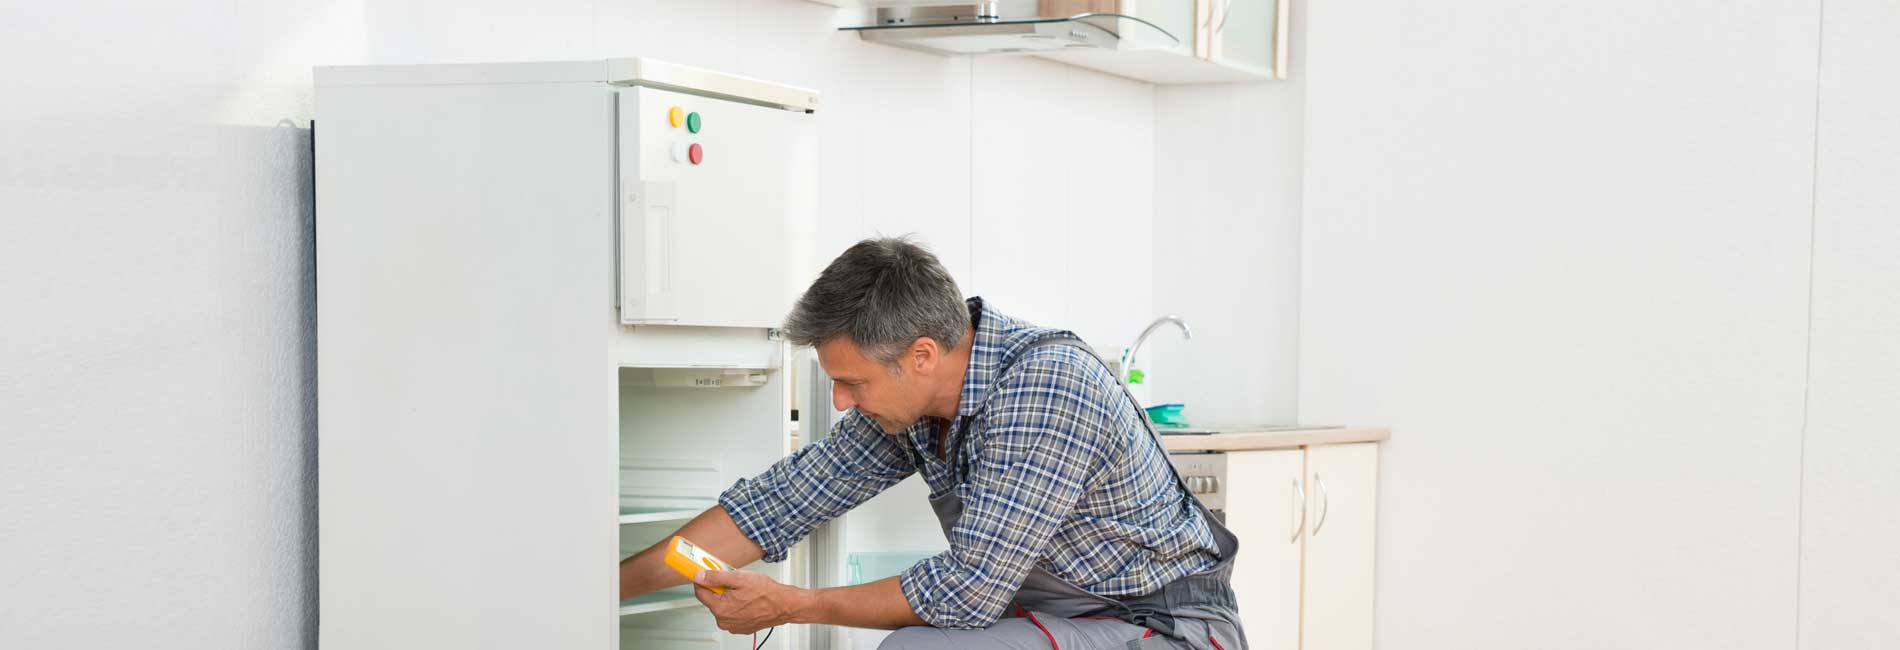 Whirlpool Fridge Repair in Thiruverkadu